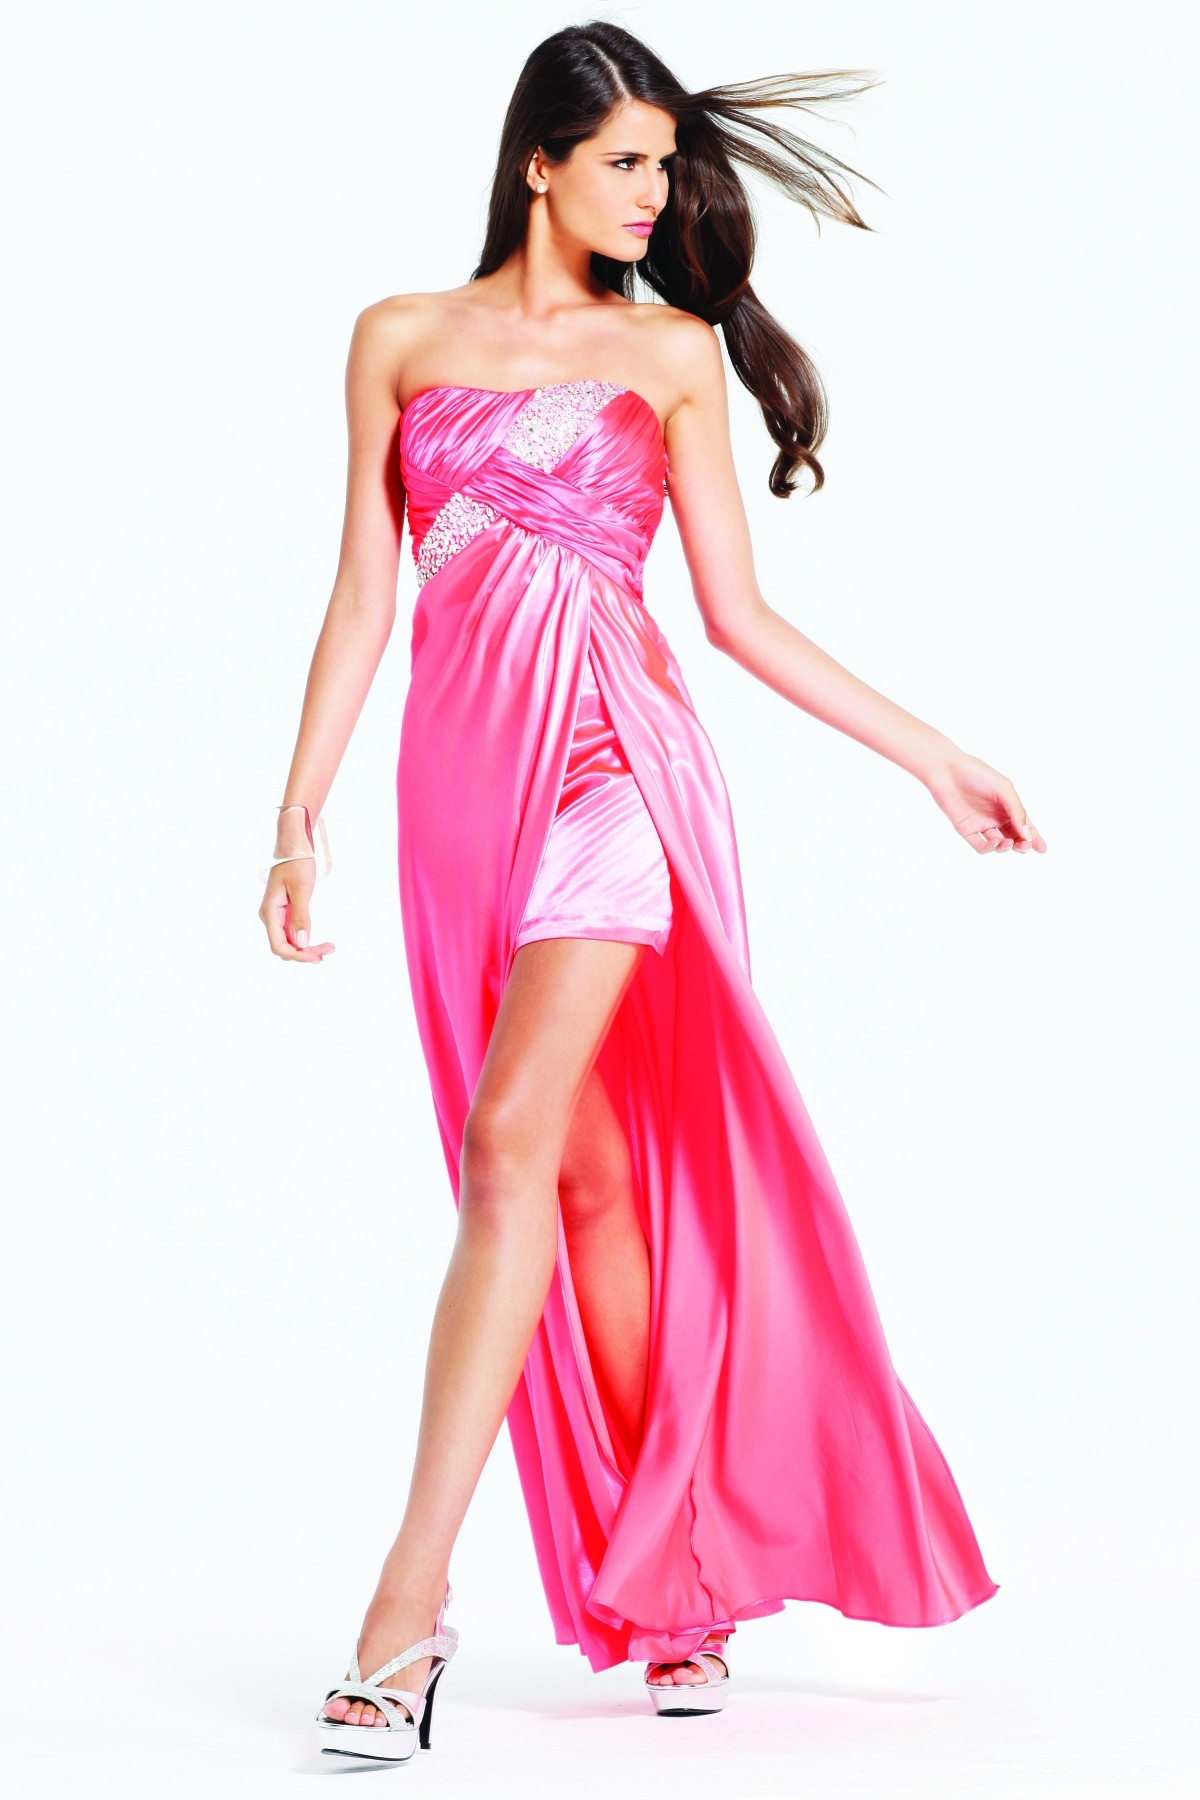 Elaborate Seuined Hot Pink High Low Strapless Column Sexy Dresses 45d67b45d